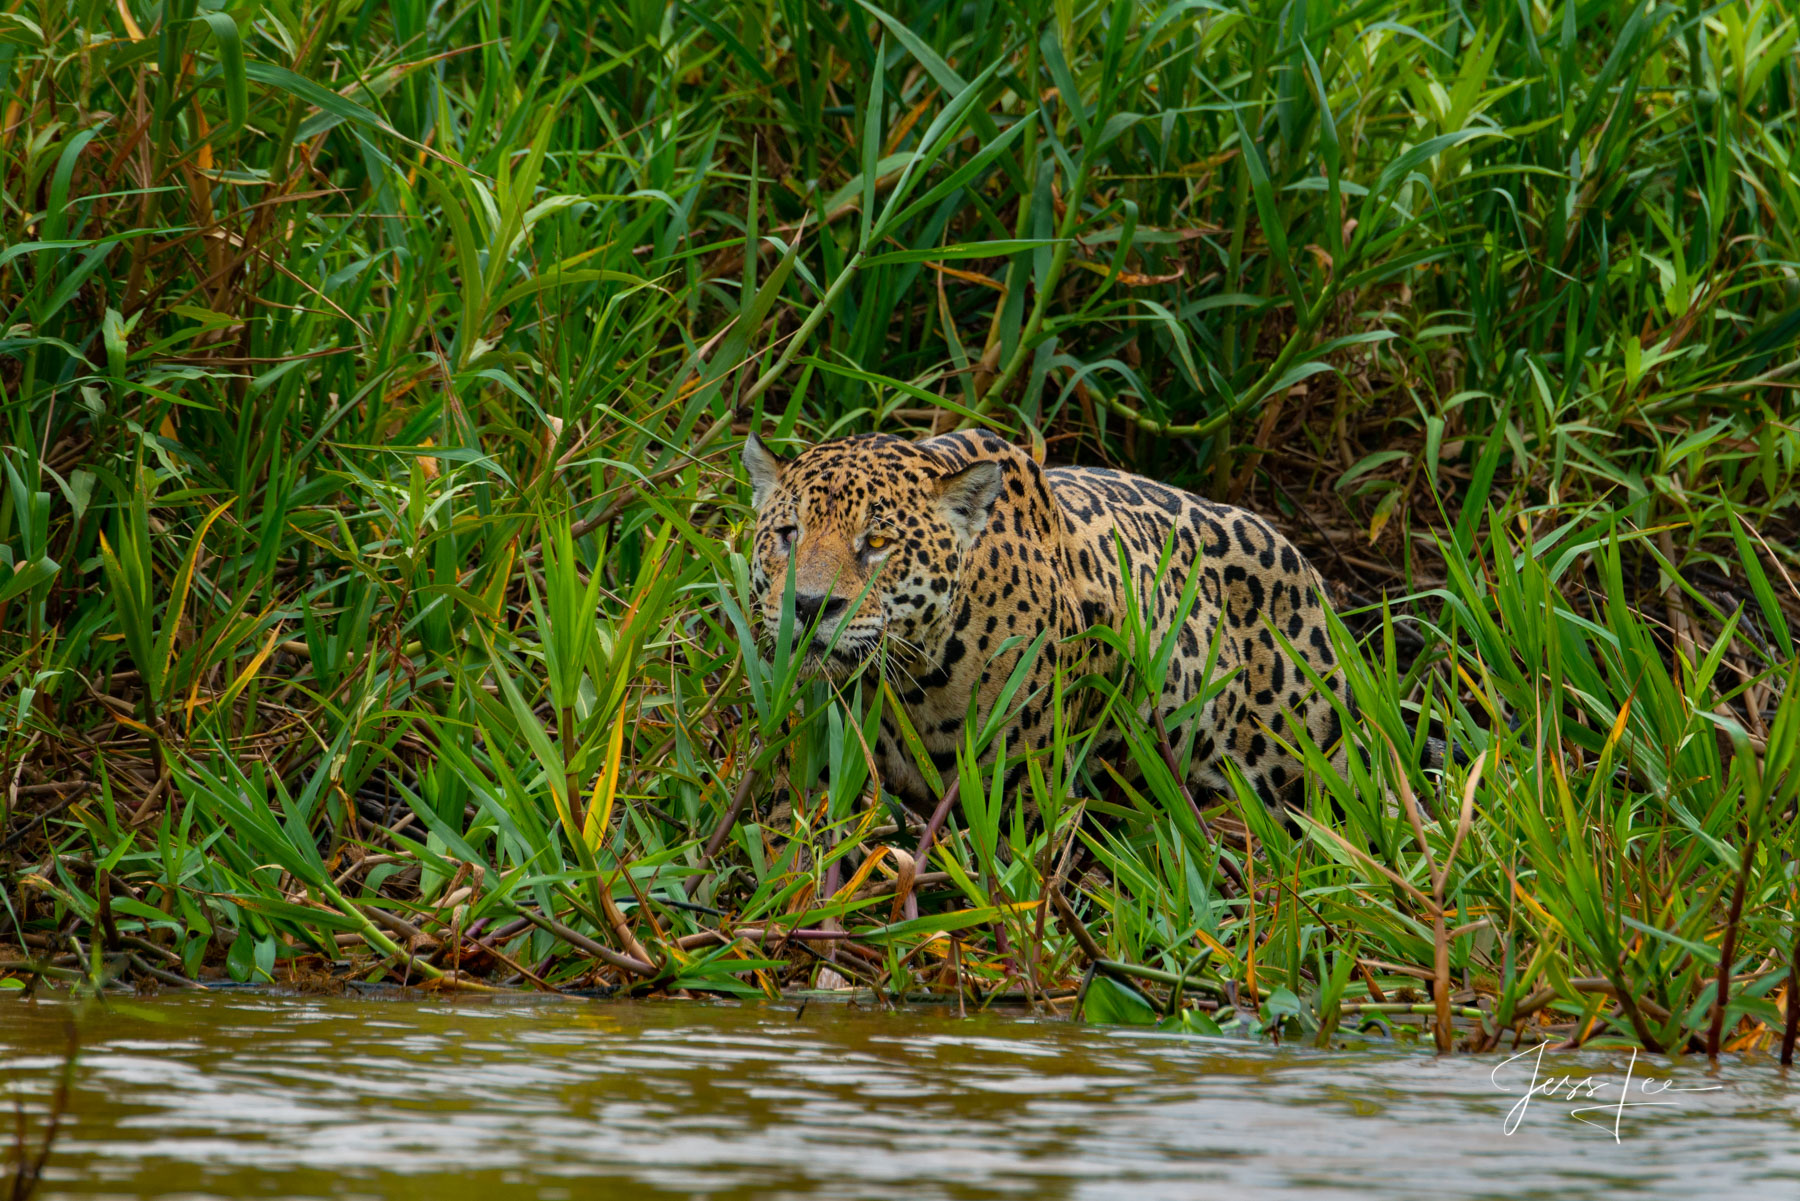 Fine art Jaguar huntingprint limited edition of 300 luxury prints by Jess Lee. All photographs copyright © Jess Lee